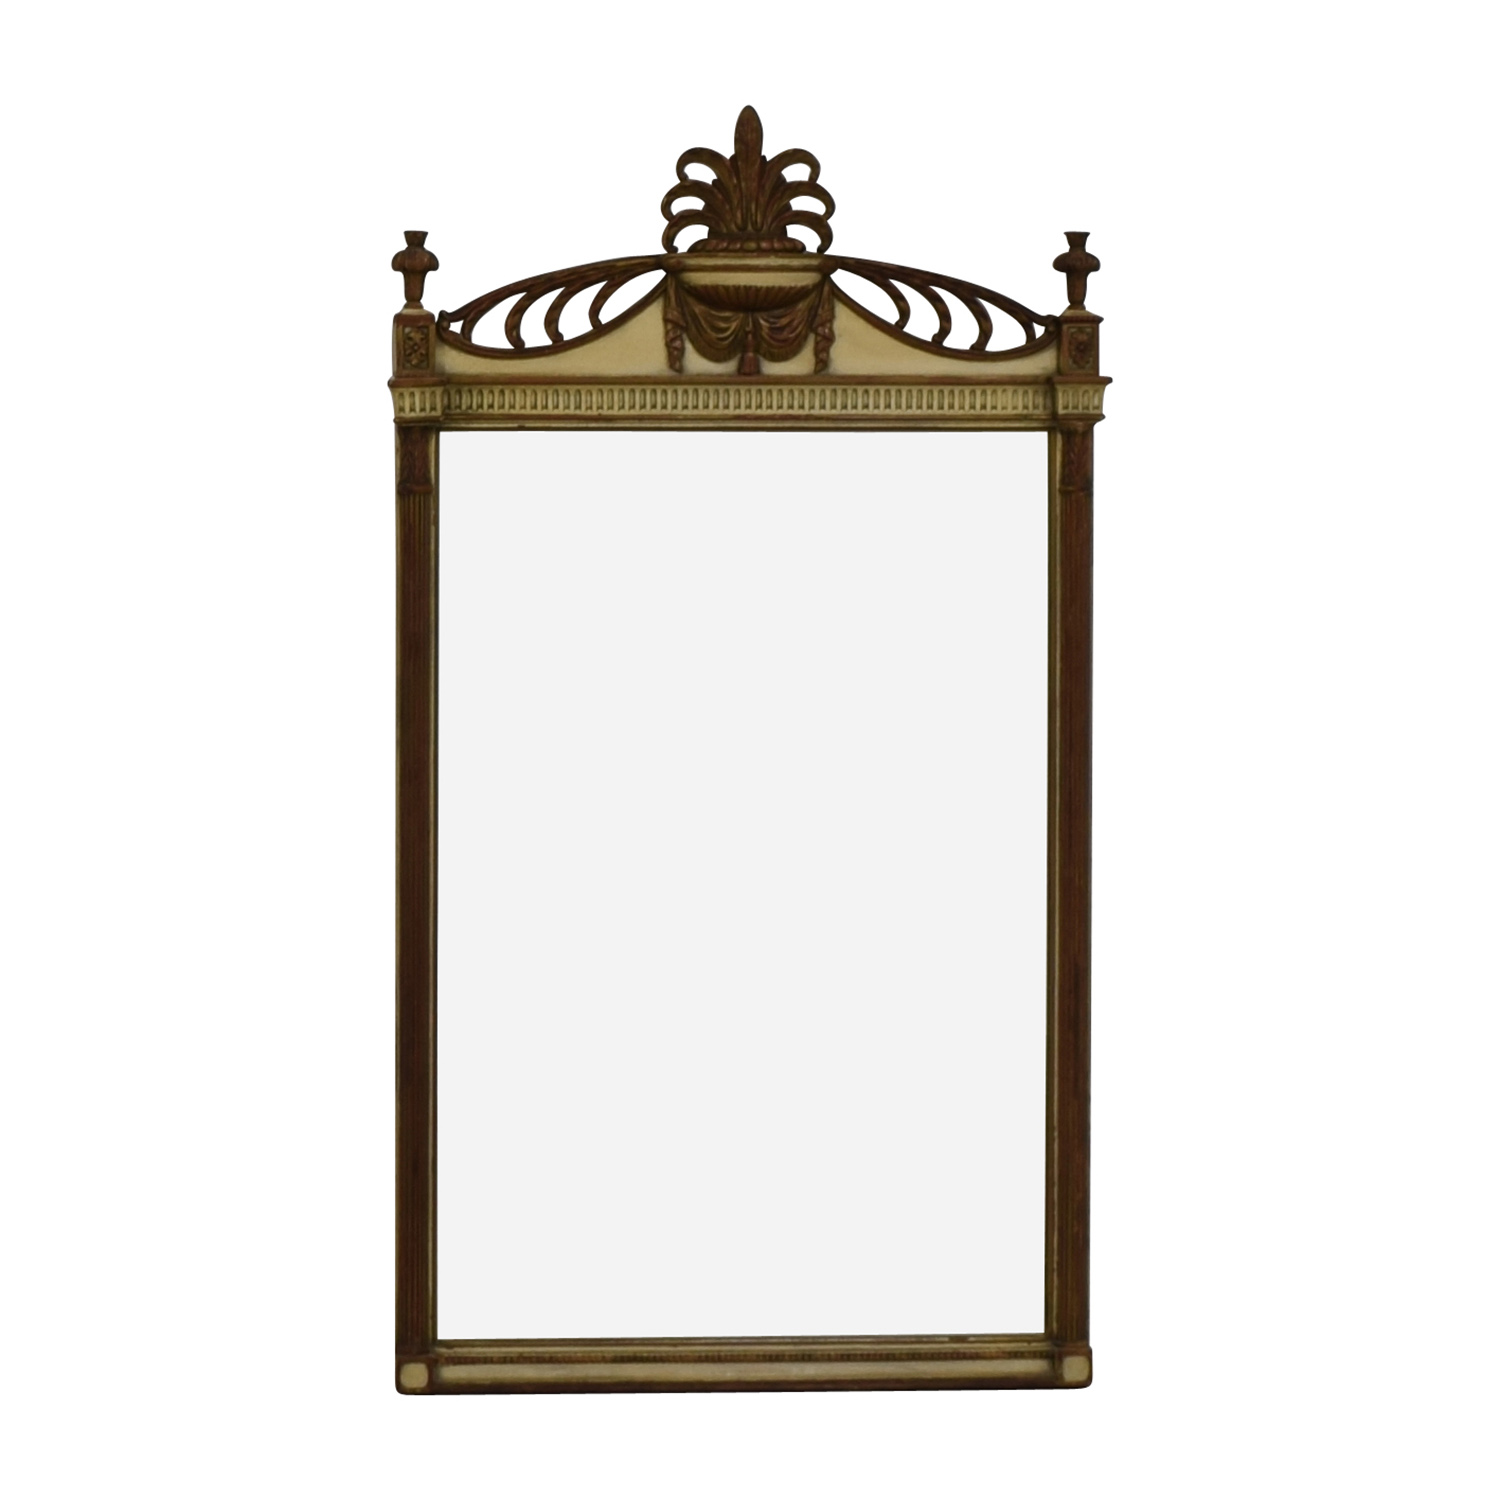 Vintage Rectangular Mirror / Decor